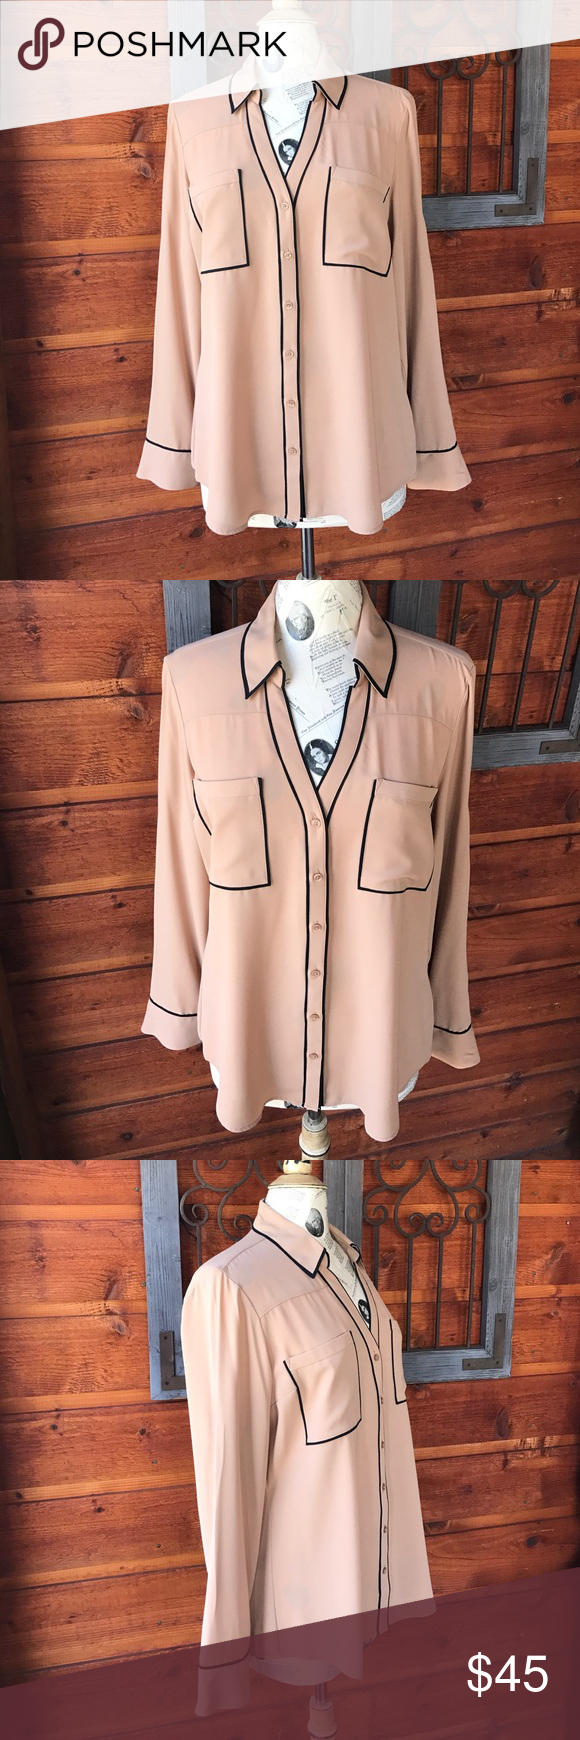 Express button down nude and black blouse size L Express button down nude and black blouse size large. In excellent condition and comes from a smoke free home. Please use the offer button to make any offers and do not make offers in the comment section thank you❤️😃✌️❤️ Express Tops Button Down Shirts